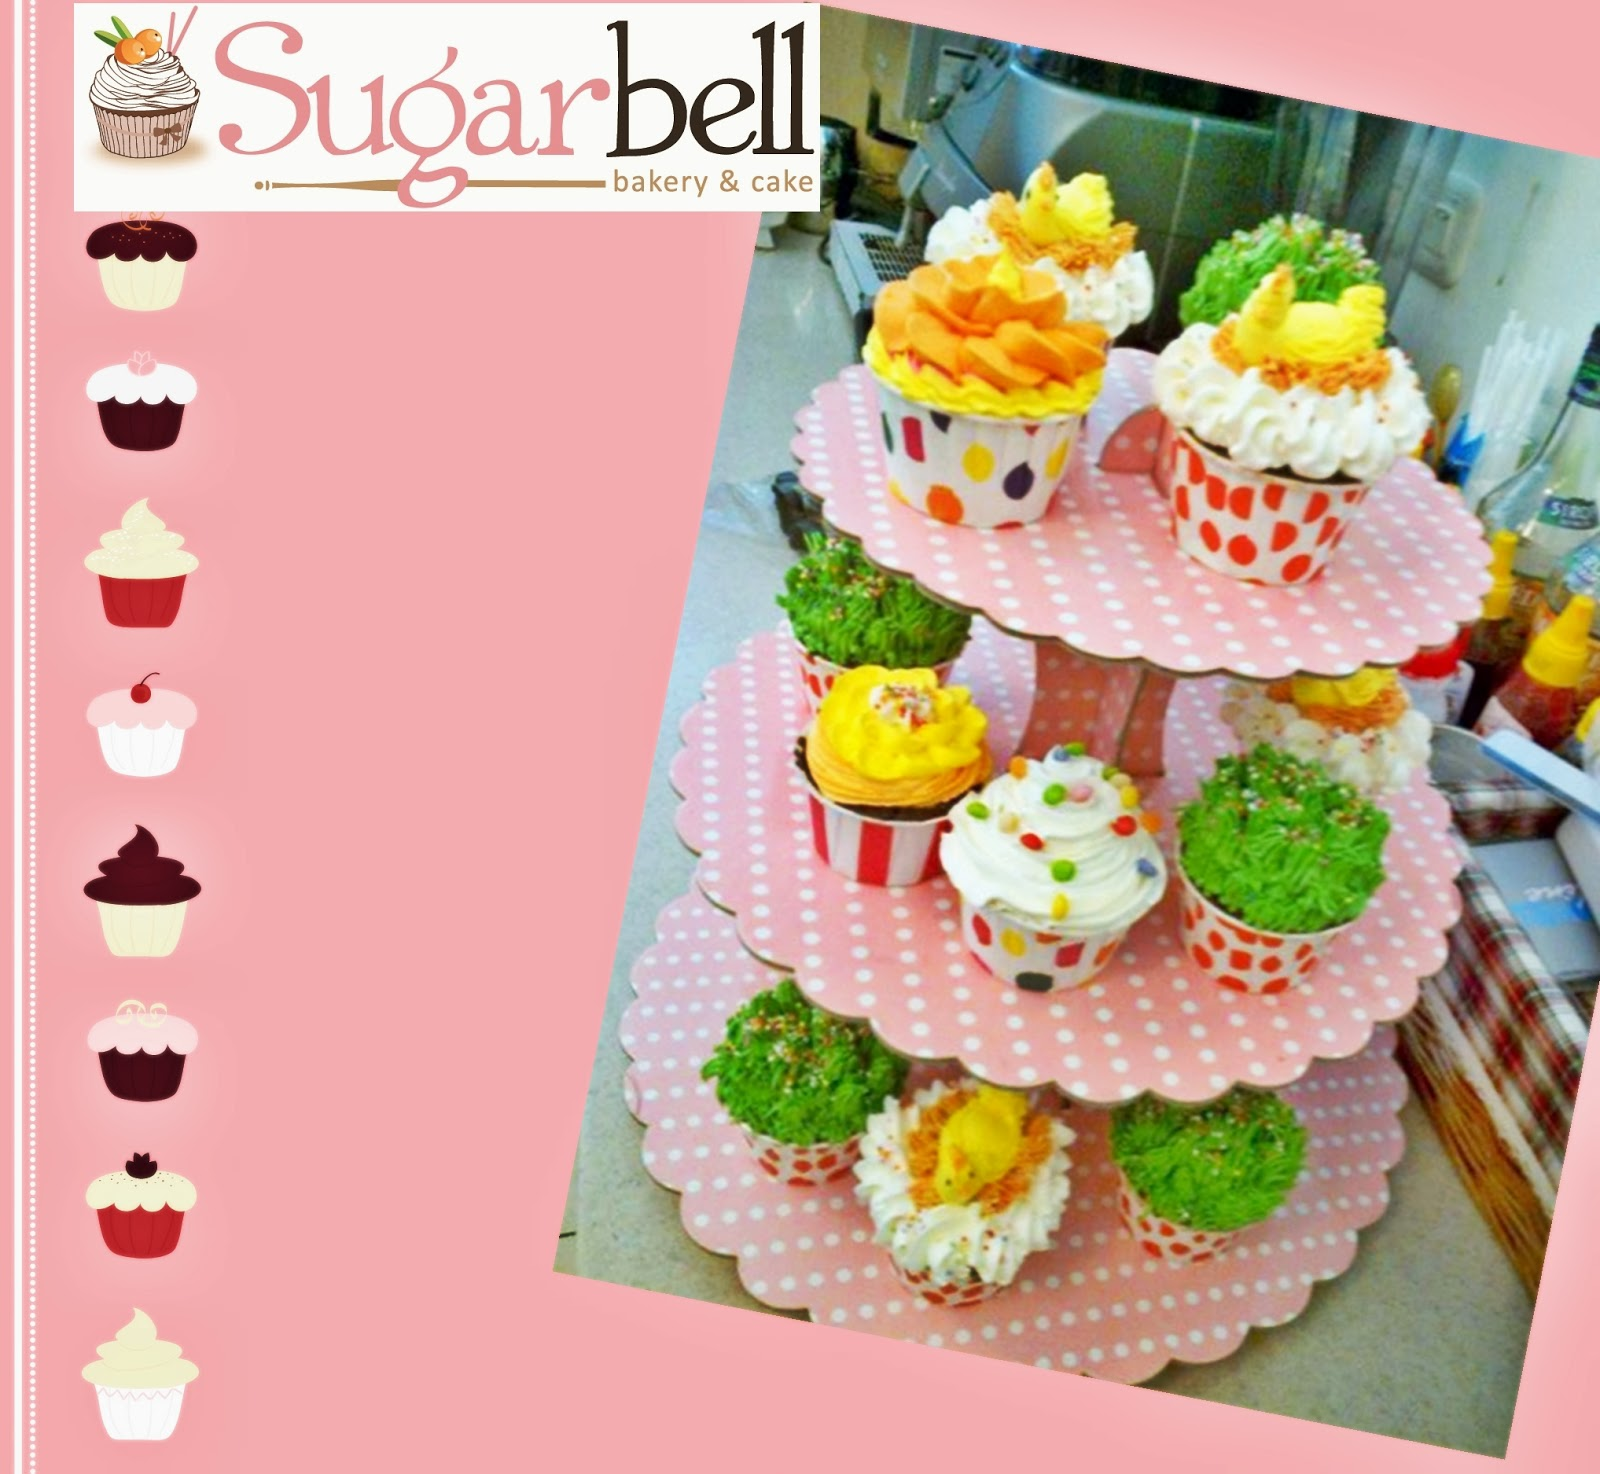 Sugarbell Bakery and Cafe cupcake